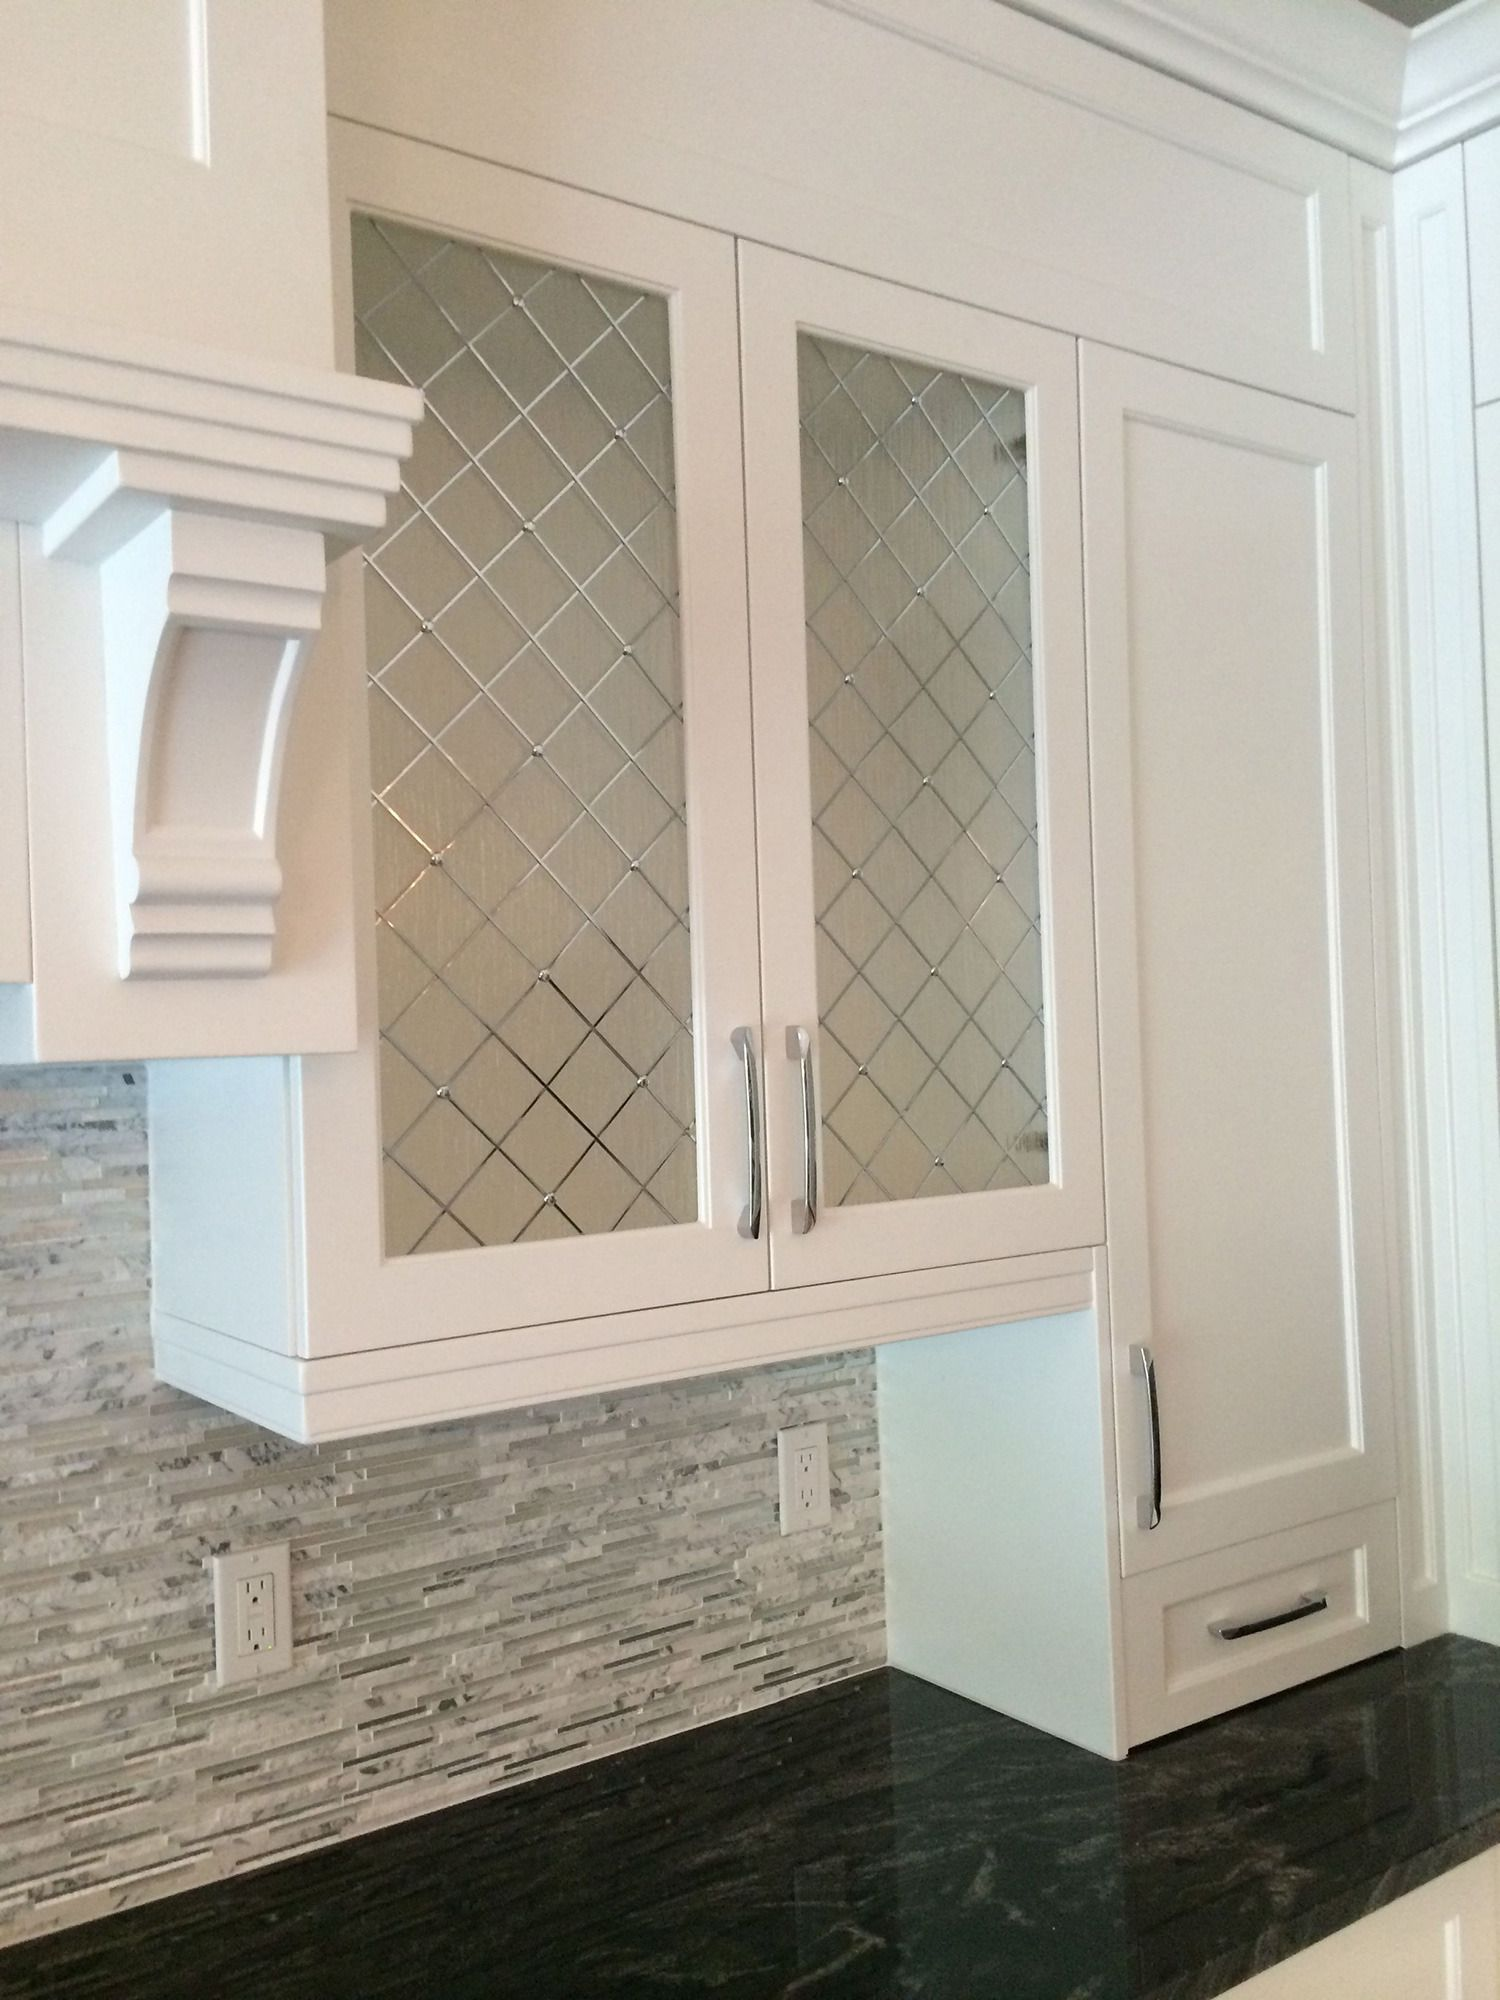 Kitchen Cabinets Glass Doors 2021 In 2020 Glass Kitchen Cabinet Doors Glass Kitchen Cabinets Kitchen Cabinets Glass Inserts